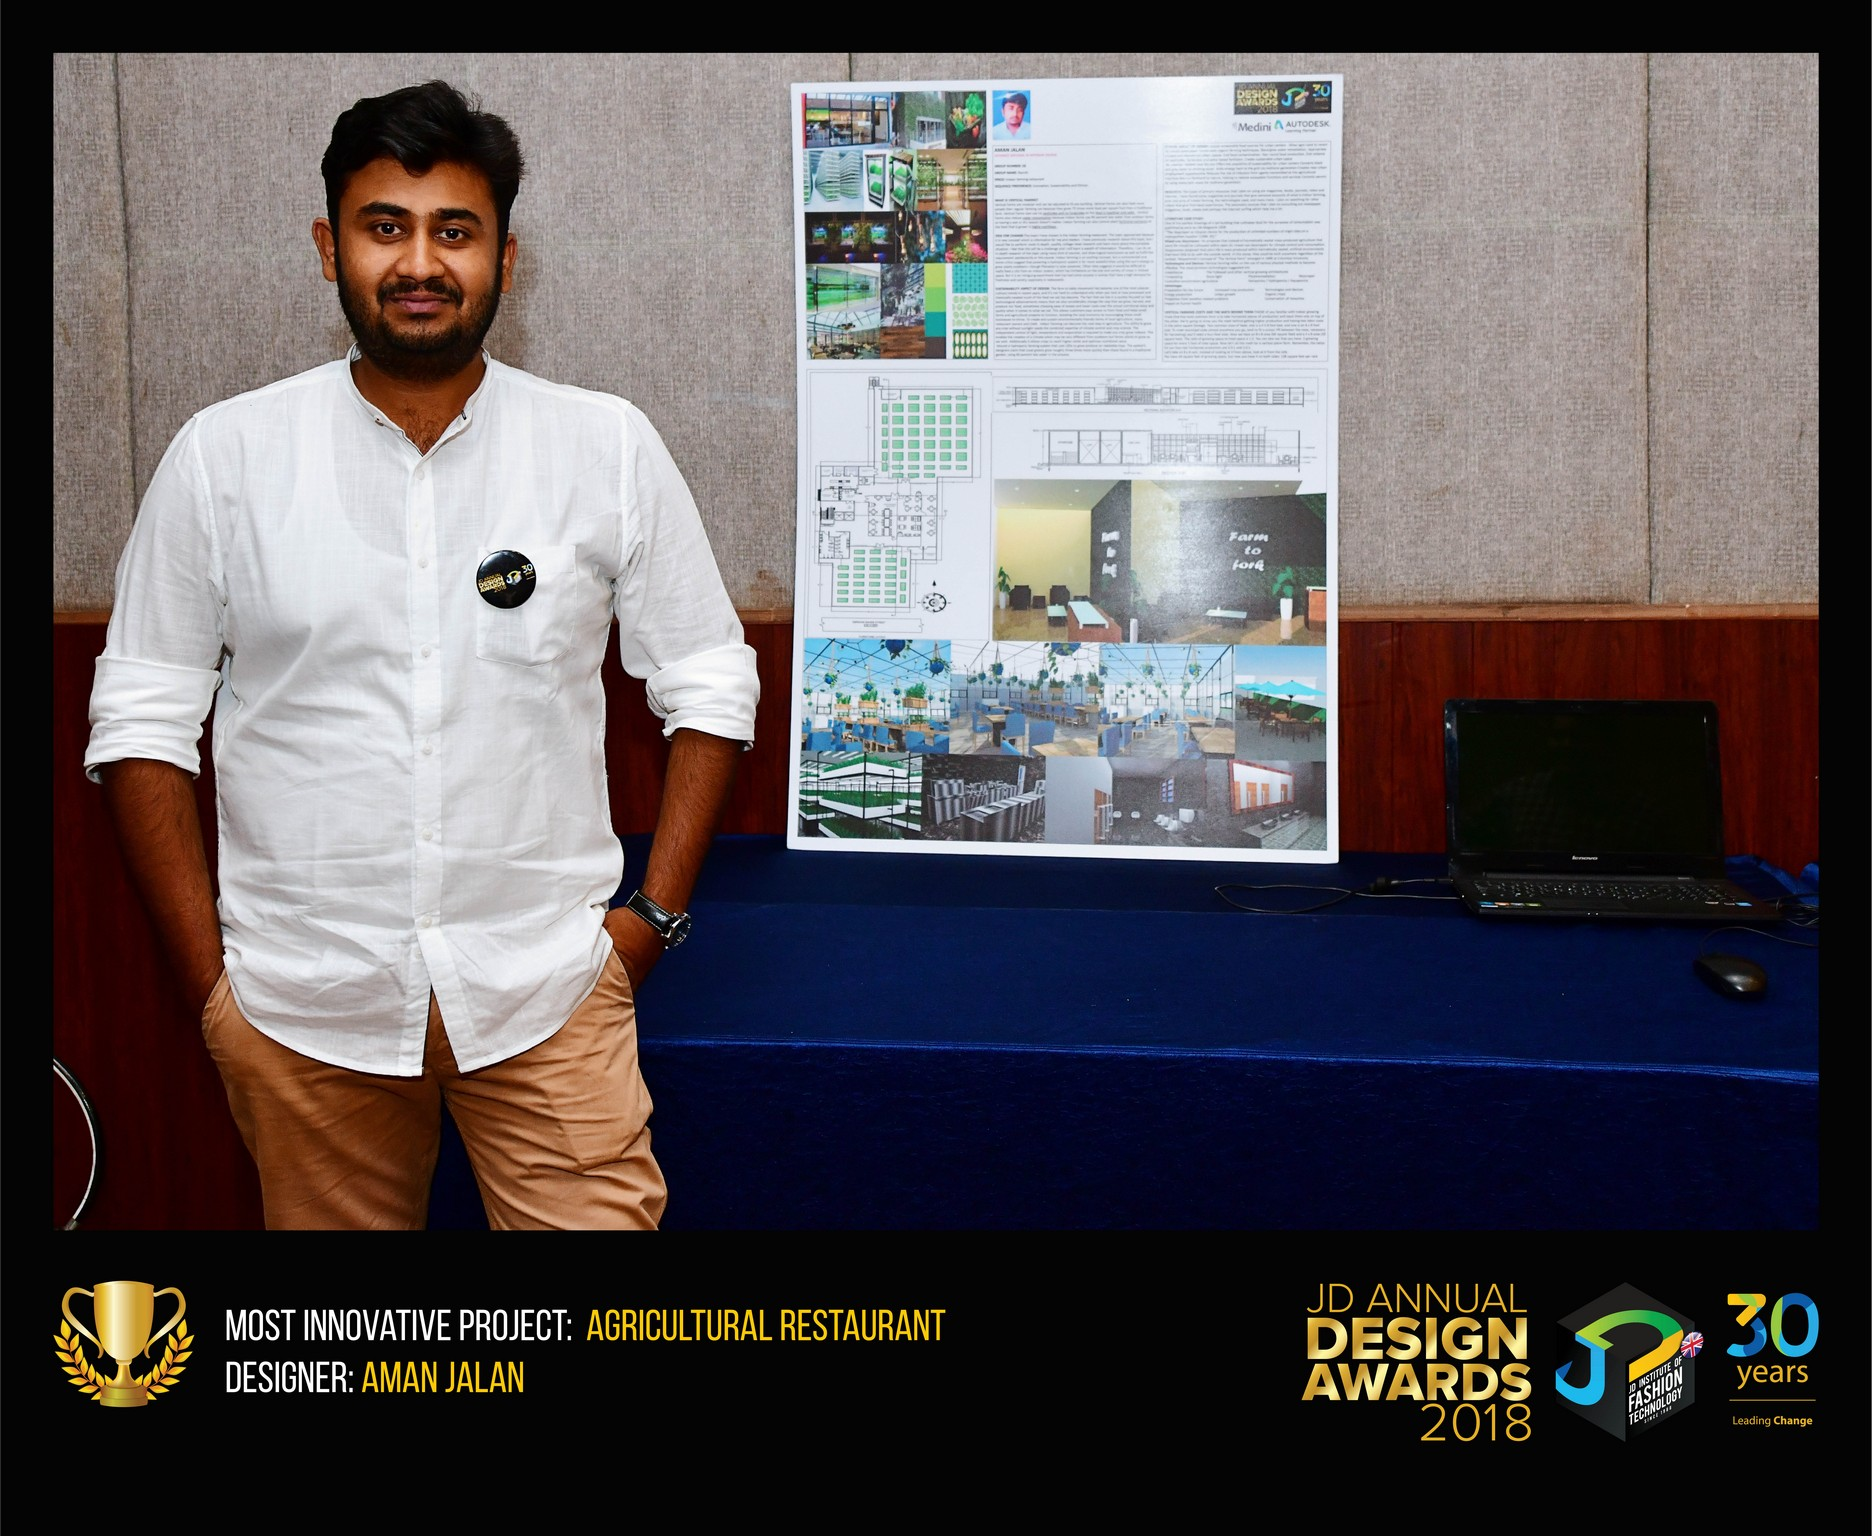 indoor farming restaurant - Agriculatural Restaurant - Indoor Farming Restaurant- Change – JD Annual Design Awards 2018